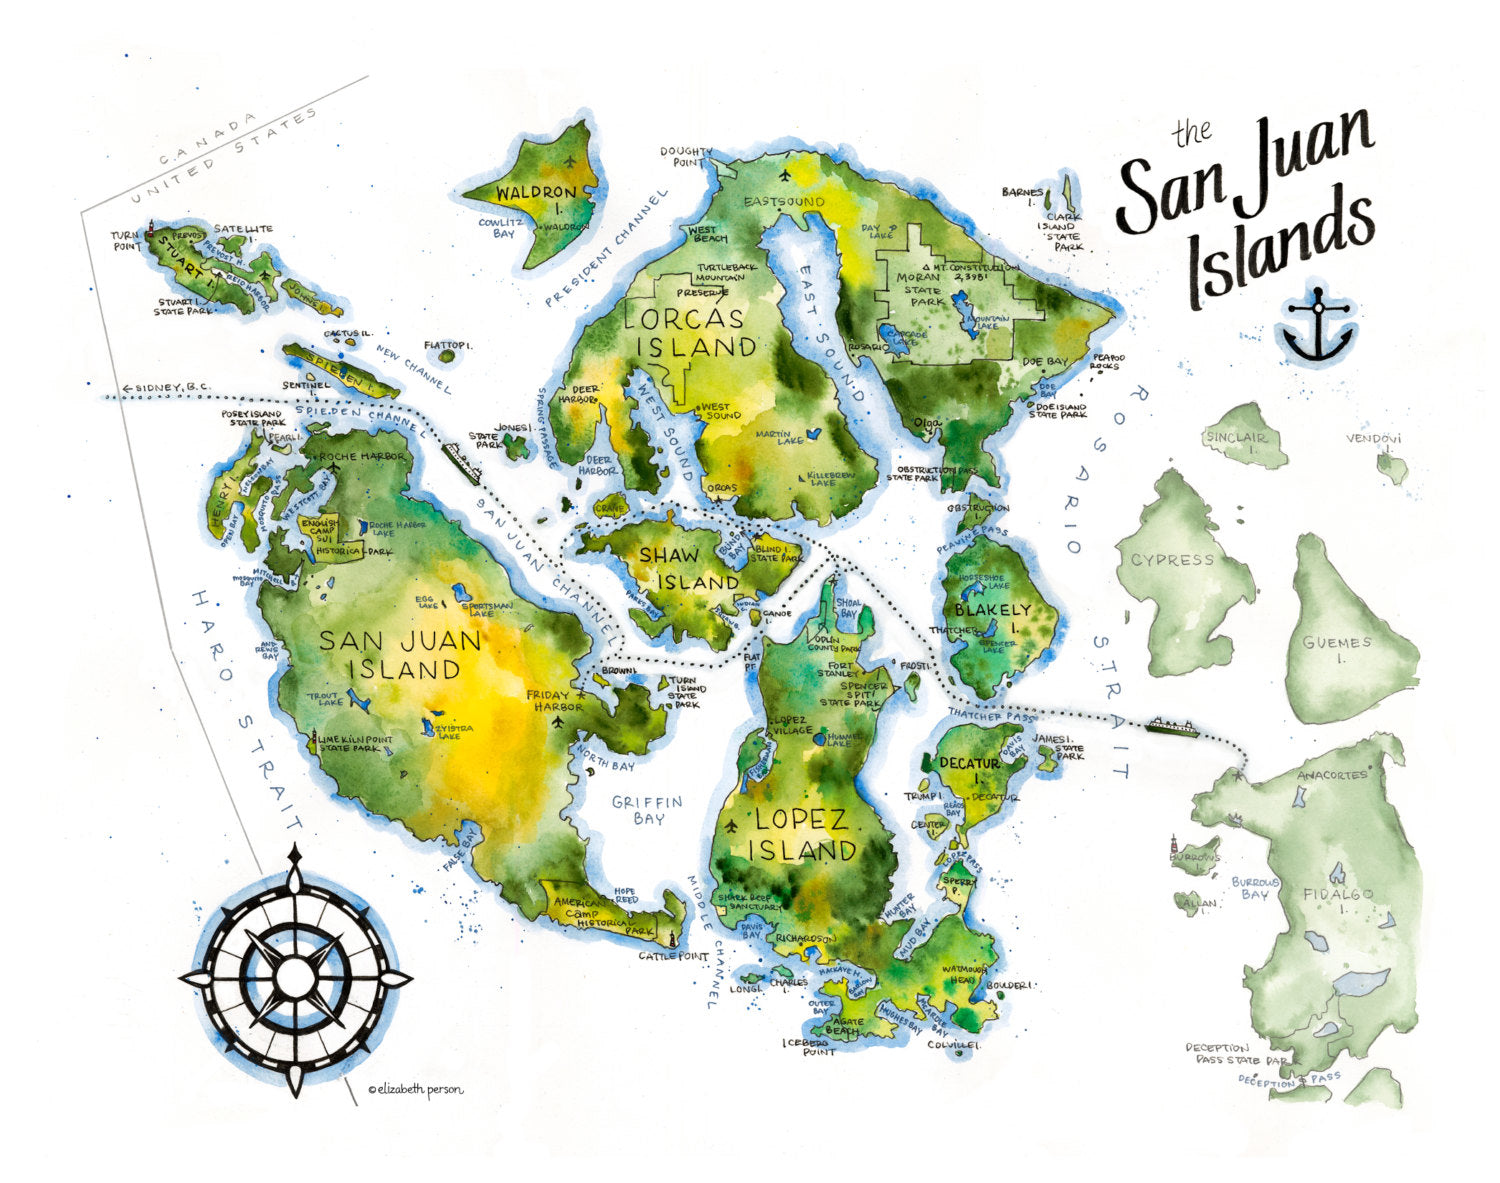 Elizabeth Person Art Prints: San Juan Islands